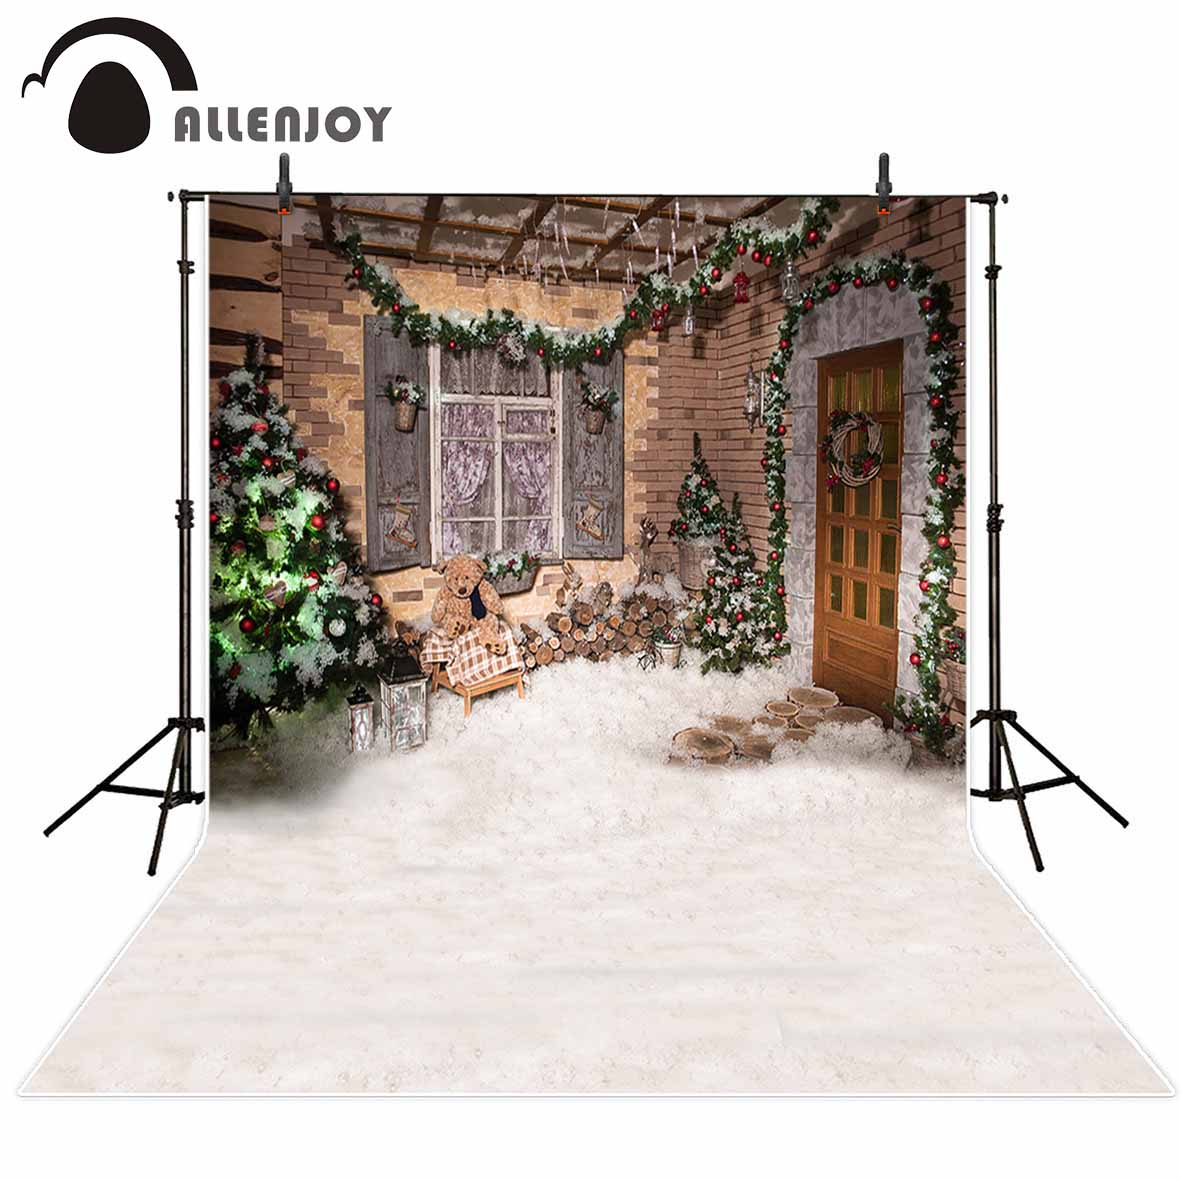 Allenjoy photography backdrop Snow winter house Christmas tree party children new background photocall customize photo printed цены